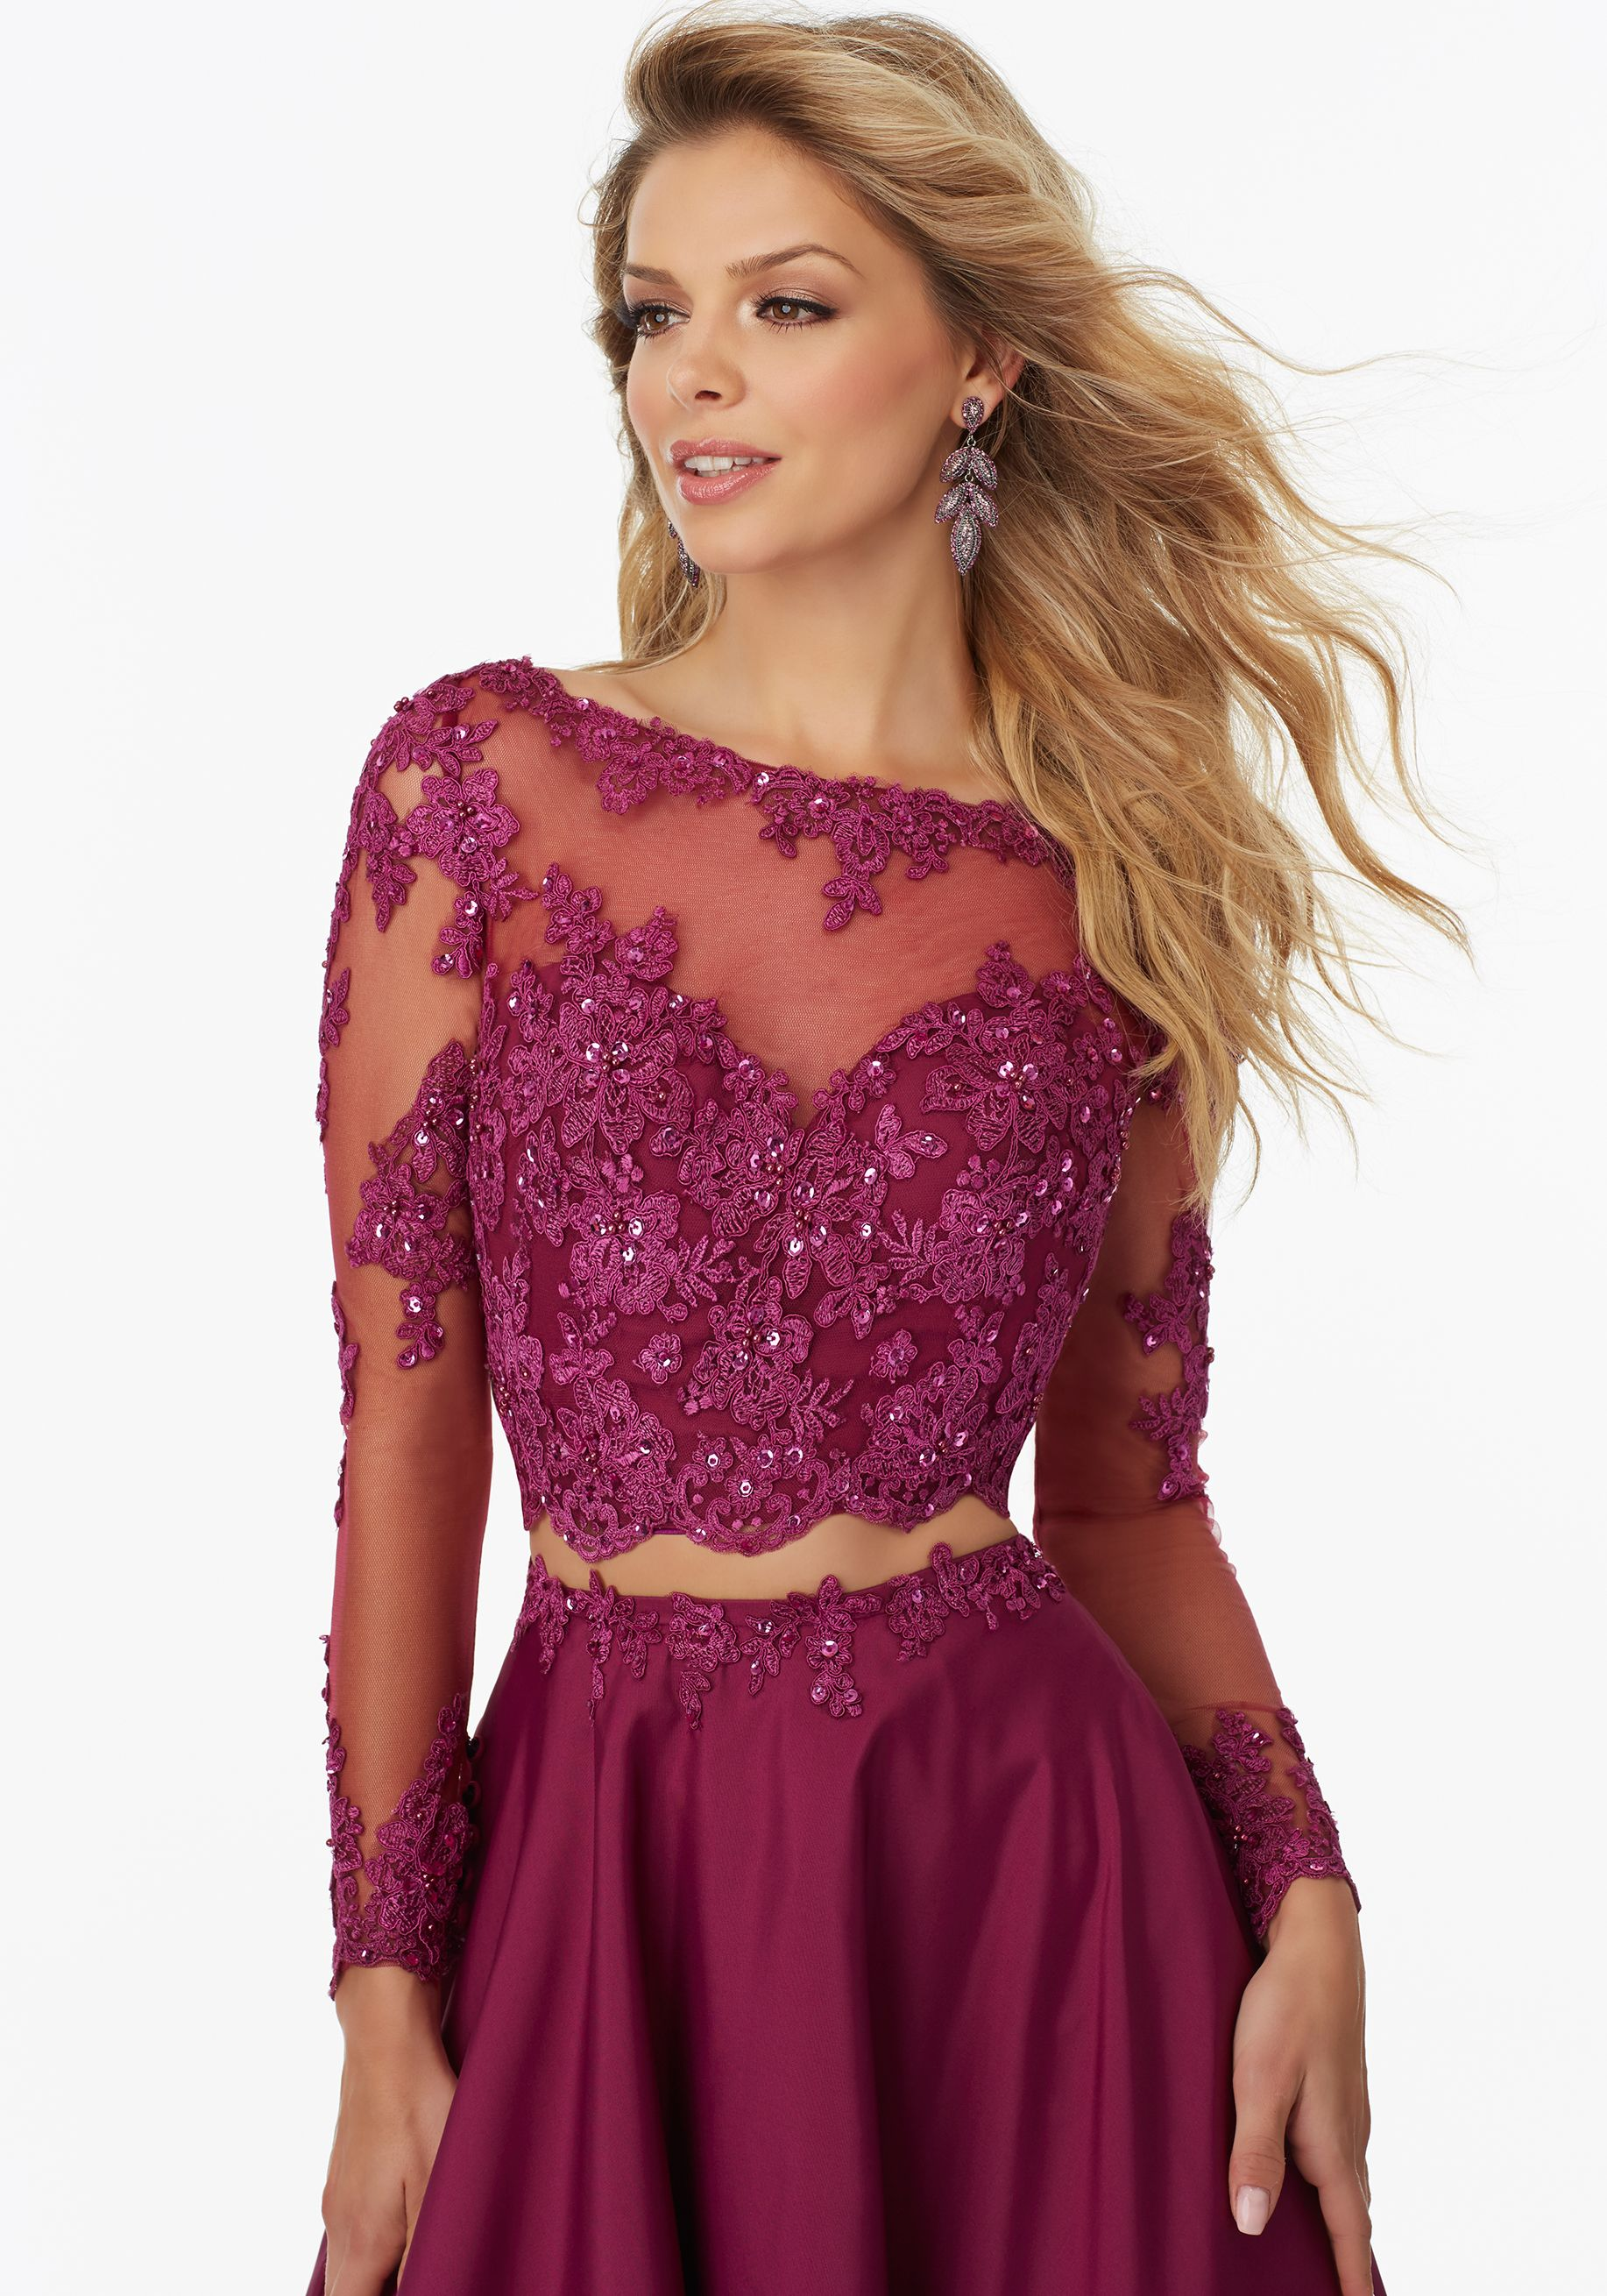 Two Piece Prom Dress With Long Sleeved Lace Morilee Cheap Prom Dresses Long Prom Dresses For Teens Piece Prom Dress [ 2620 x 1834 Pixel ]